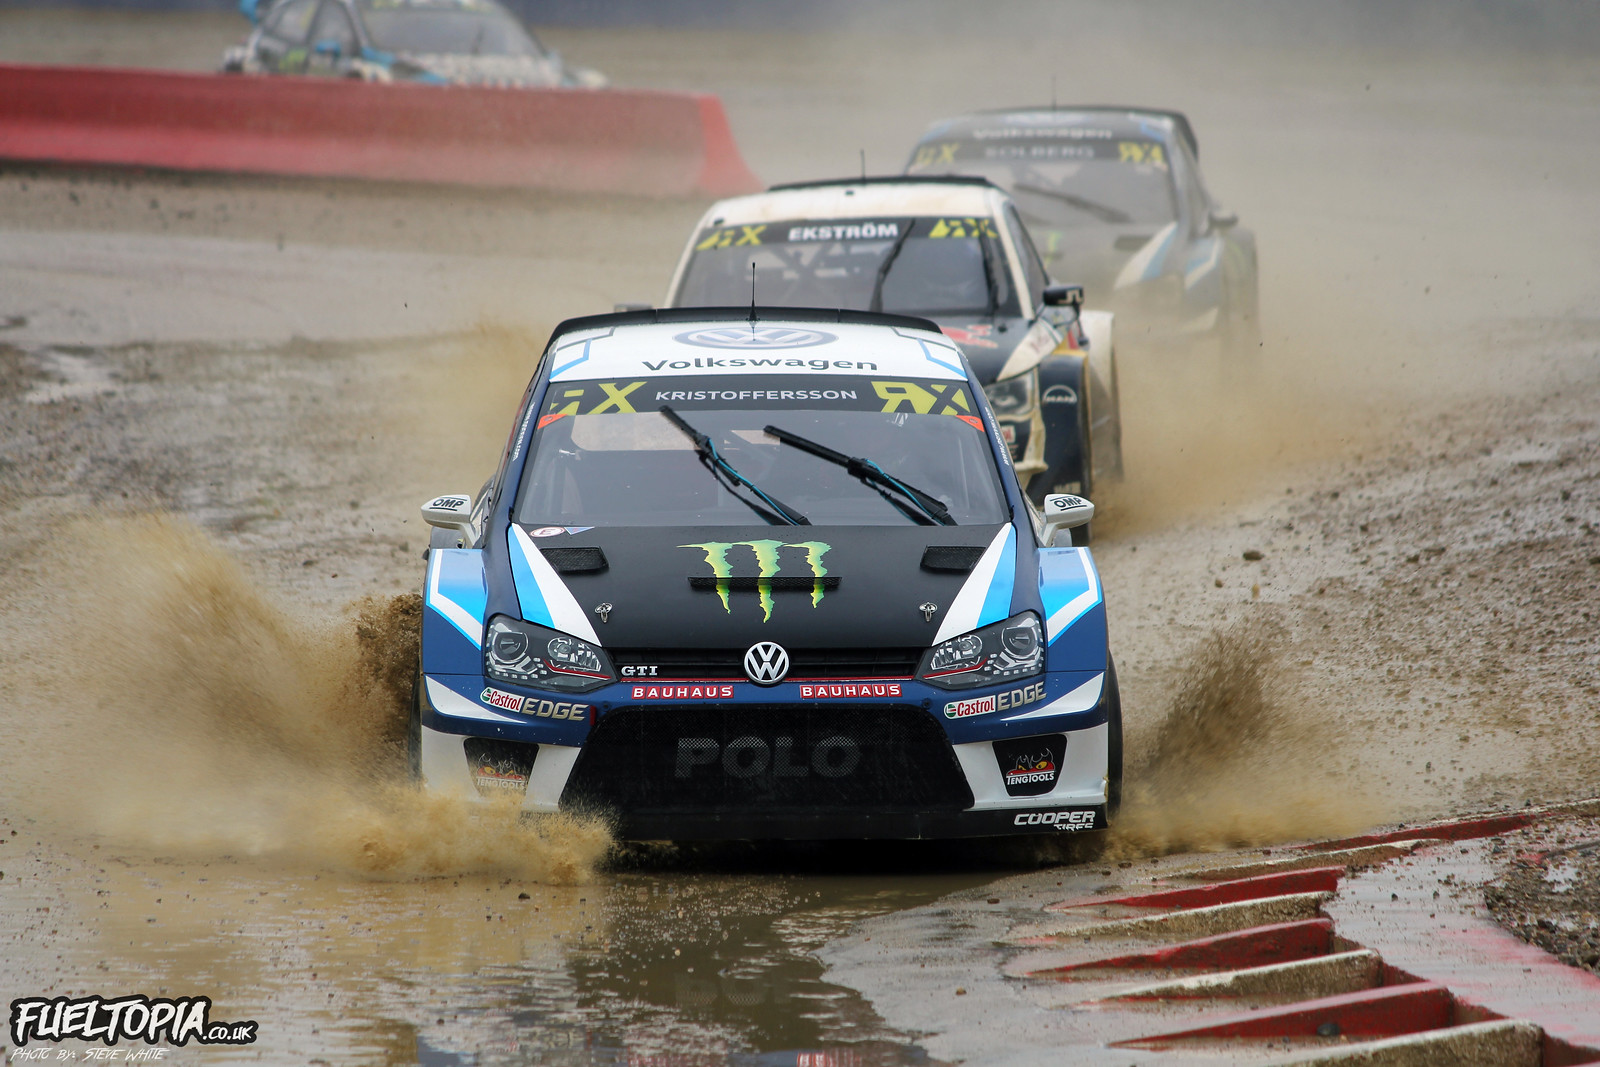 world rallycross championship monster energy 2018 season preview archives fueltopia. Black Bedroom Furniture Sets. Home Design Ideas